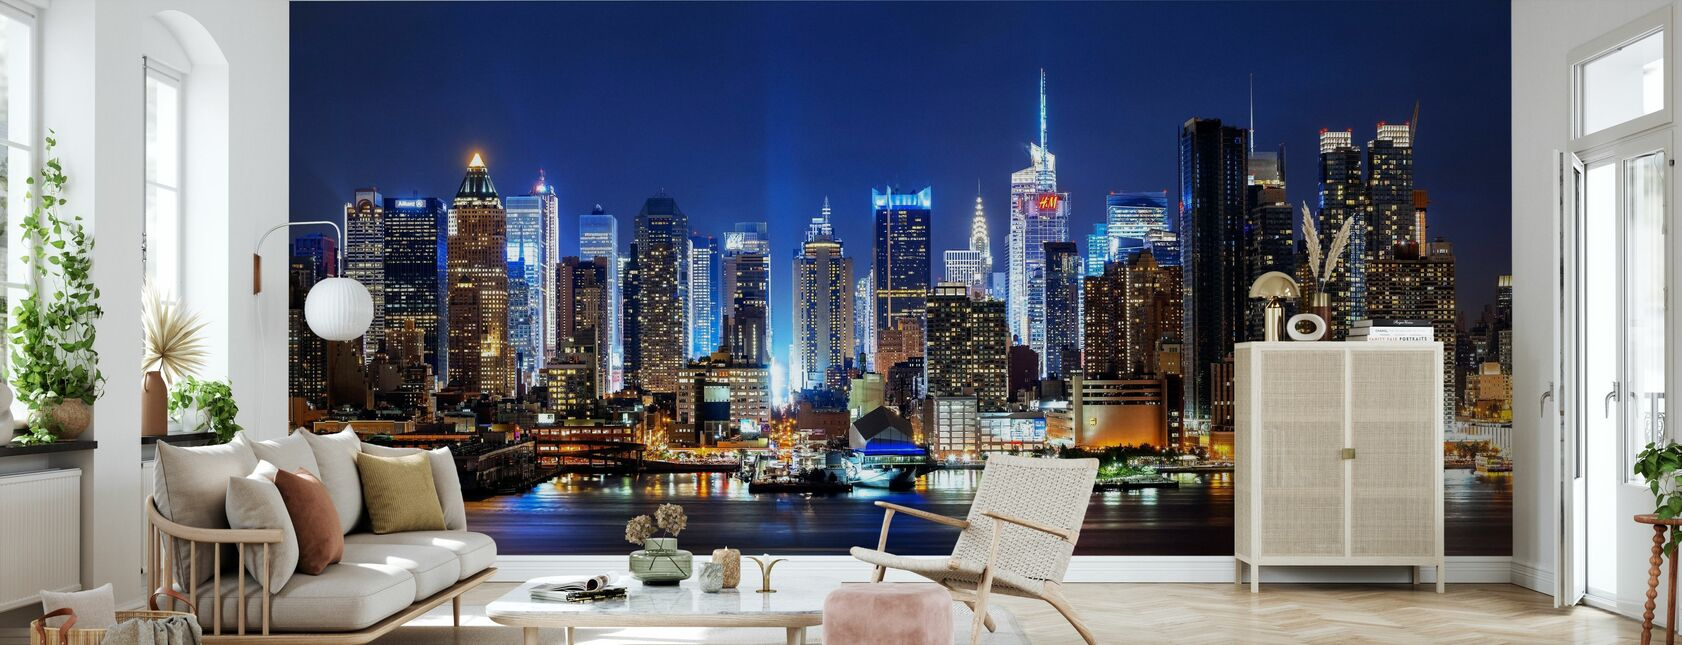 New York City Night Skyline - Wallpaper - Living Room